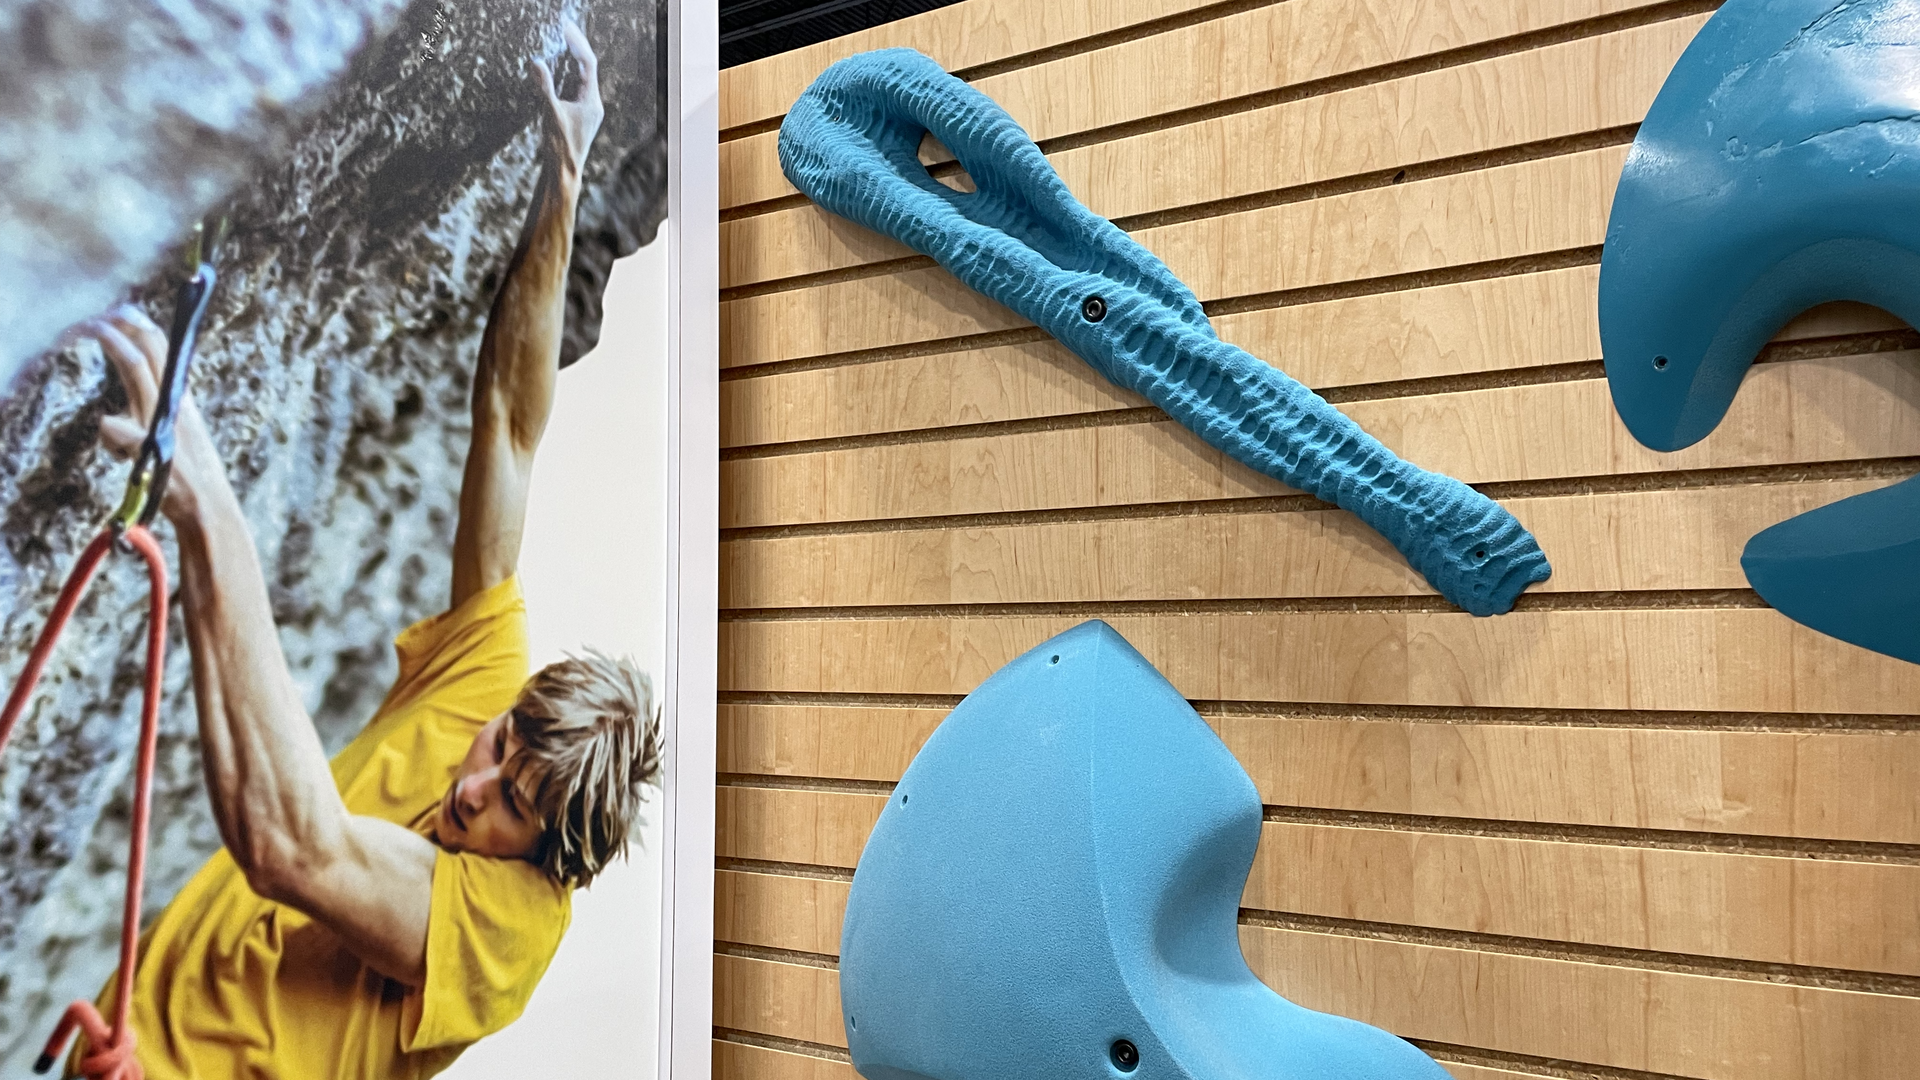 Trango's indoor climbing training holds on display at the Outdoor Retailers show. Photo: John Frank/Axios